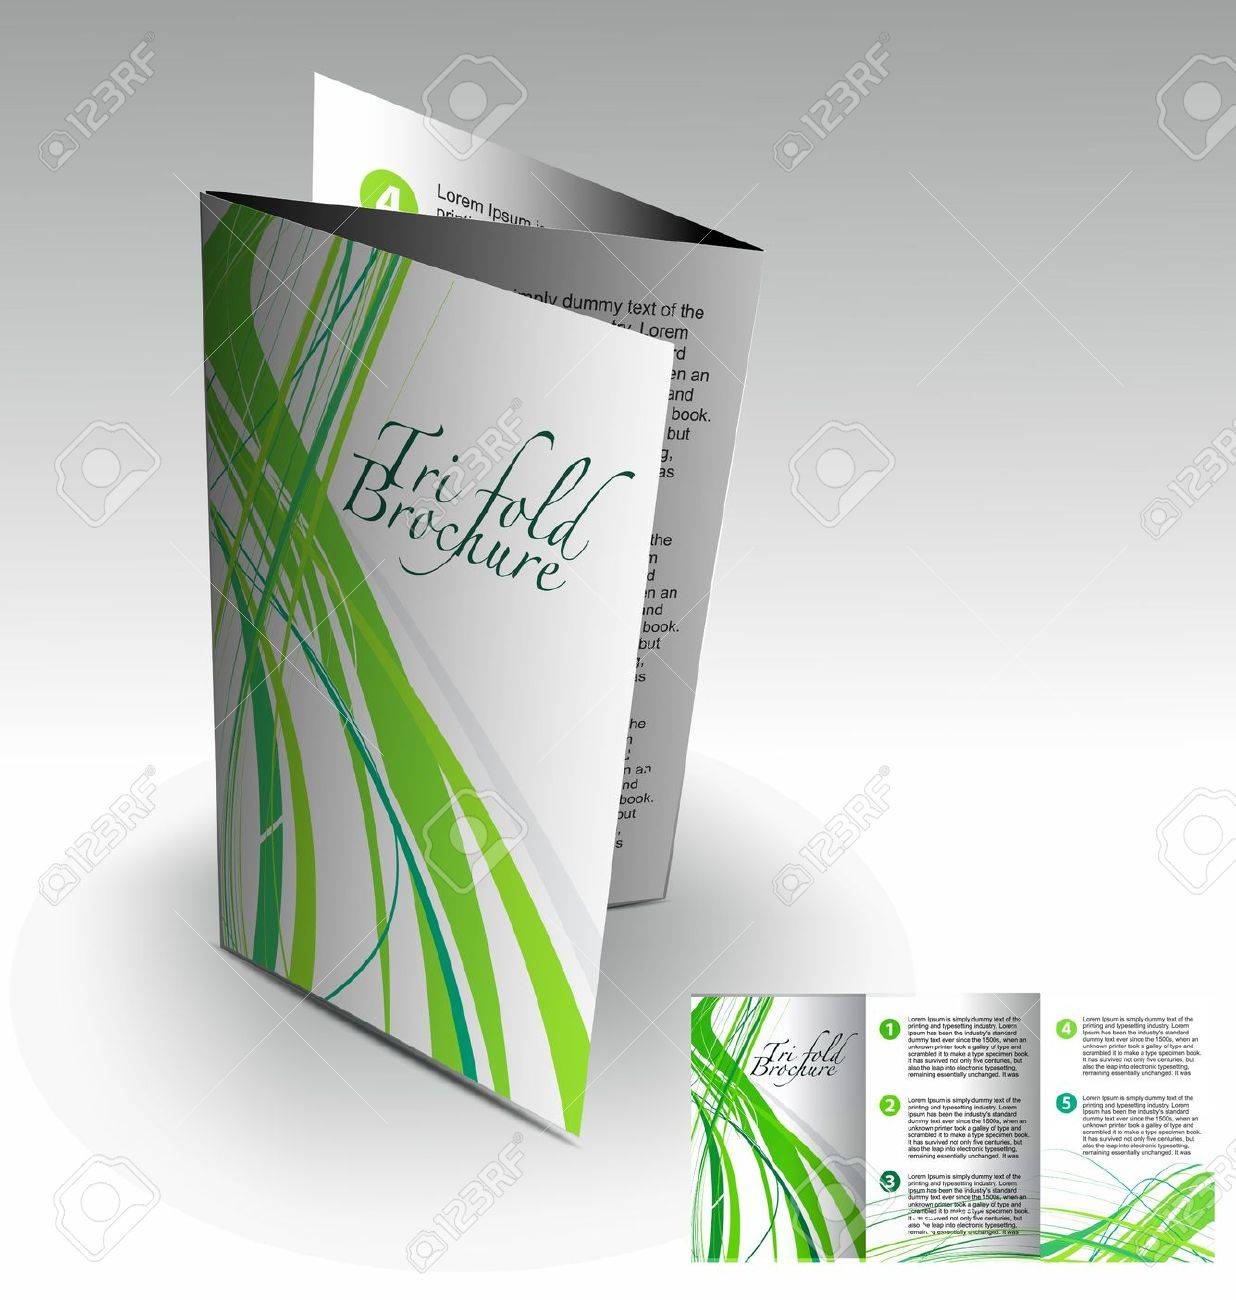 Tri-fold brochure design element, best used for your project. Stock Vector - 10510343